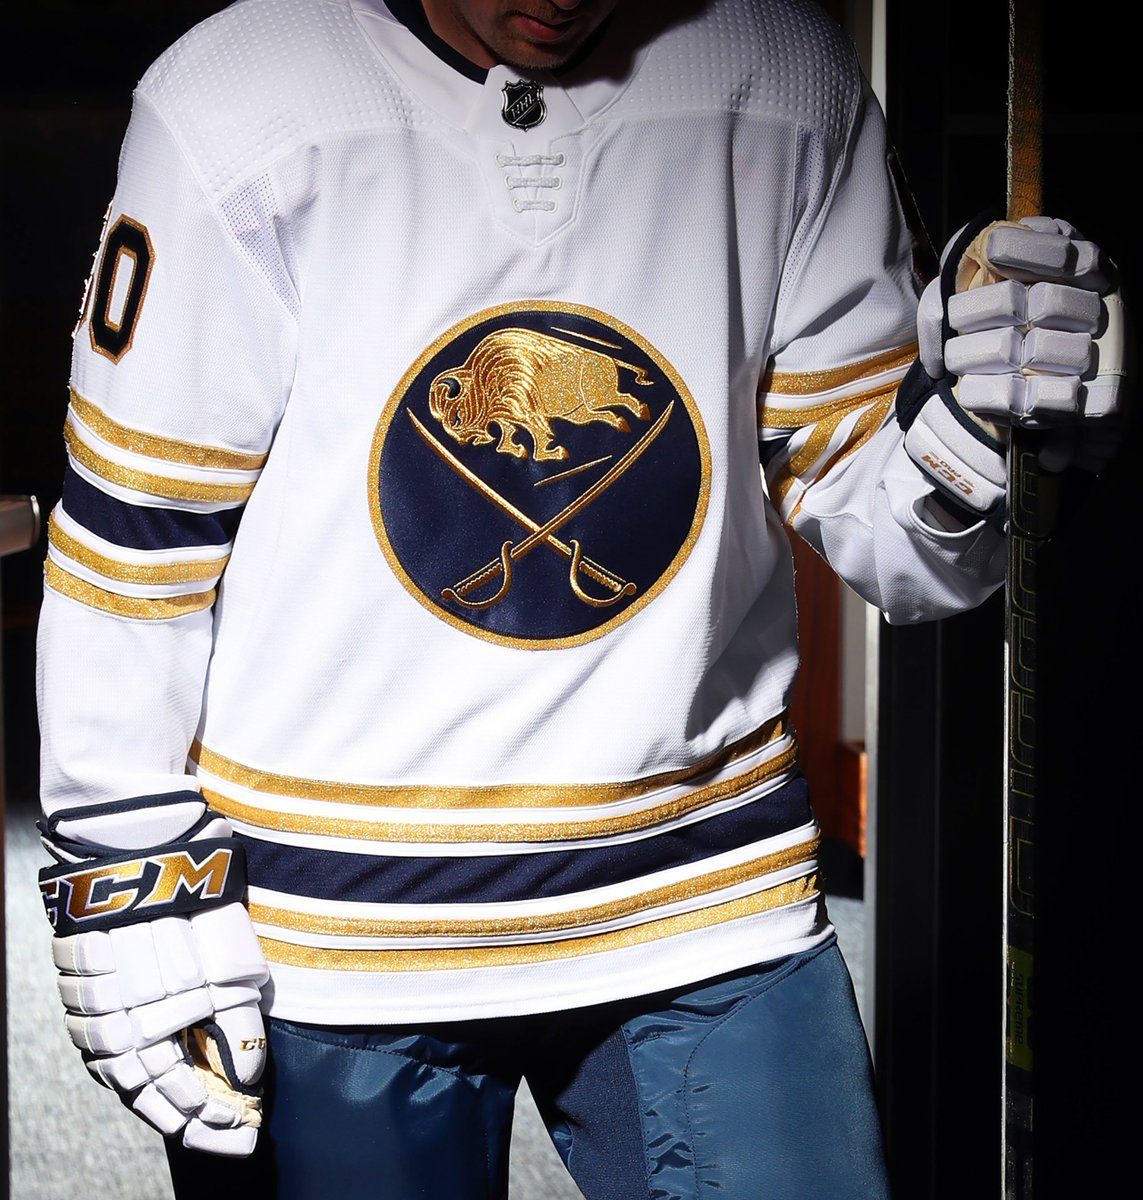 Our history in threads. #Sabres50 bufsabres.co/50Jersey